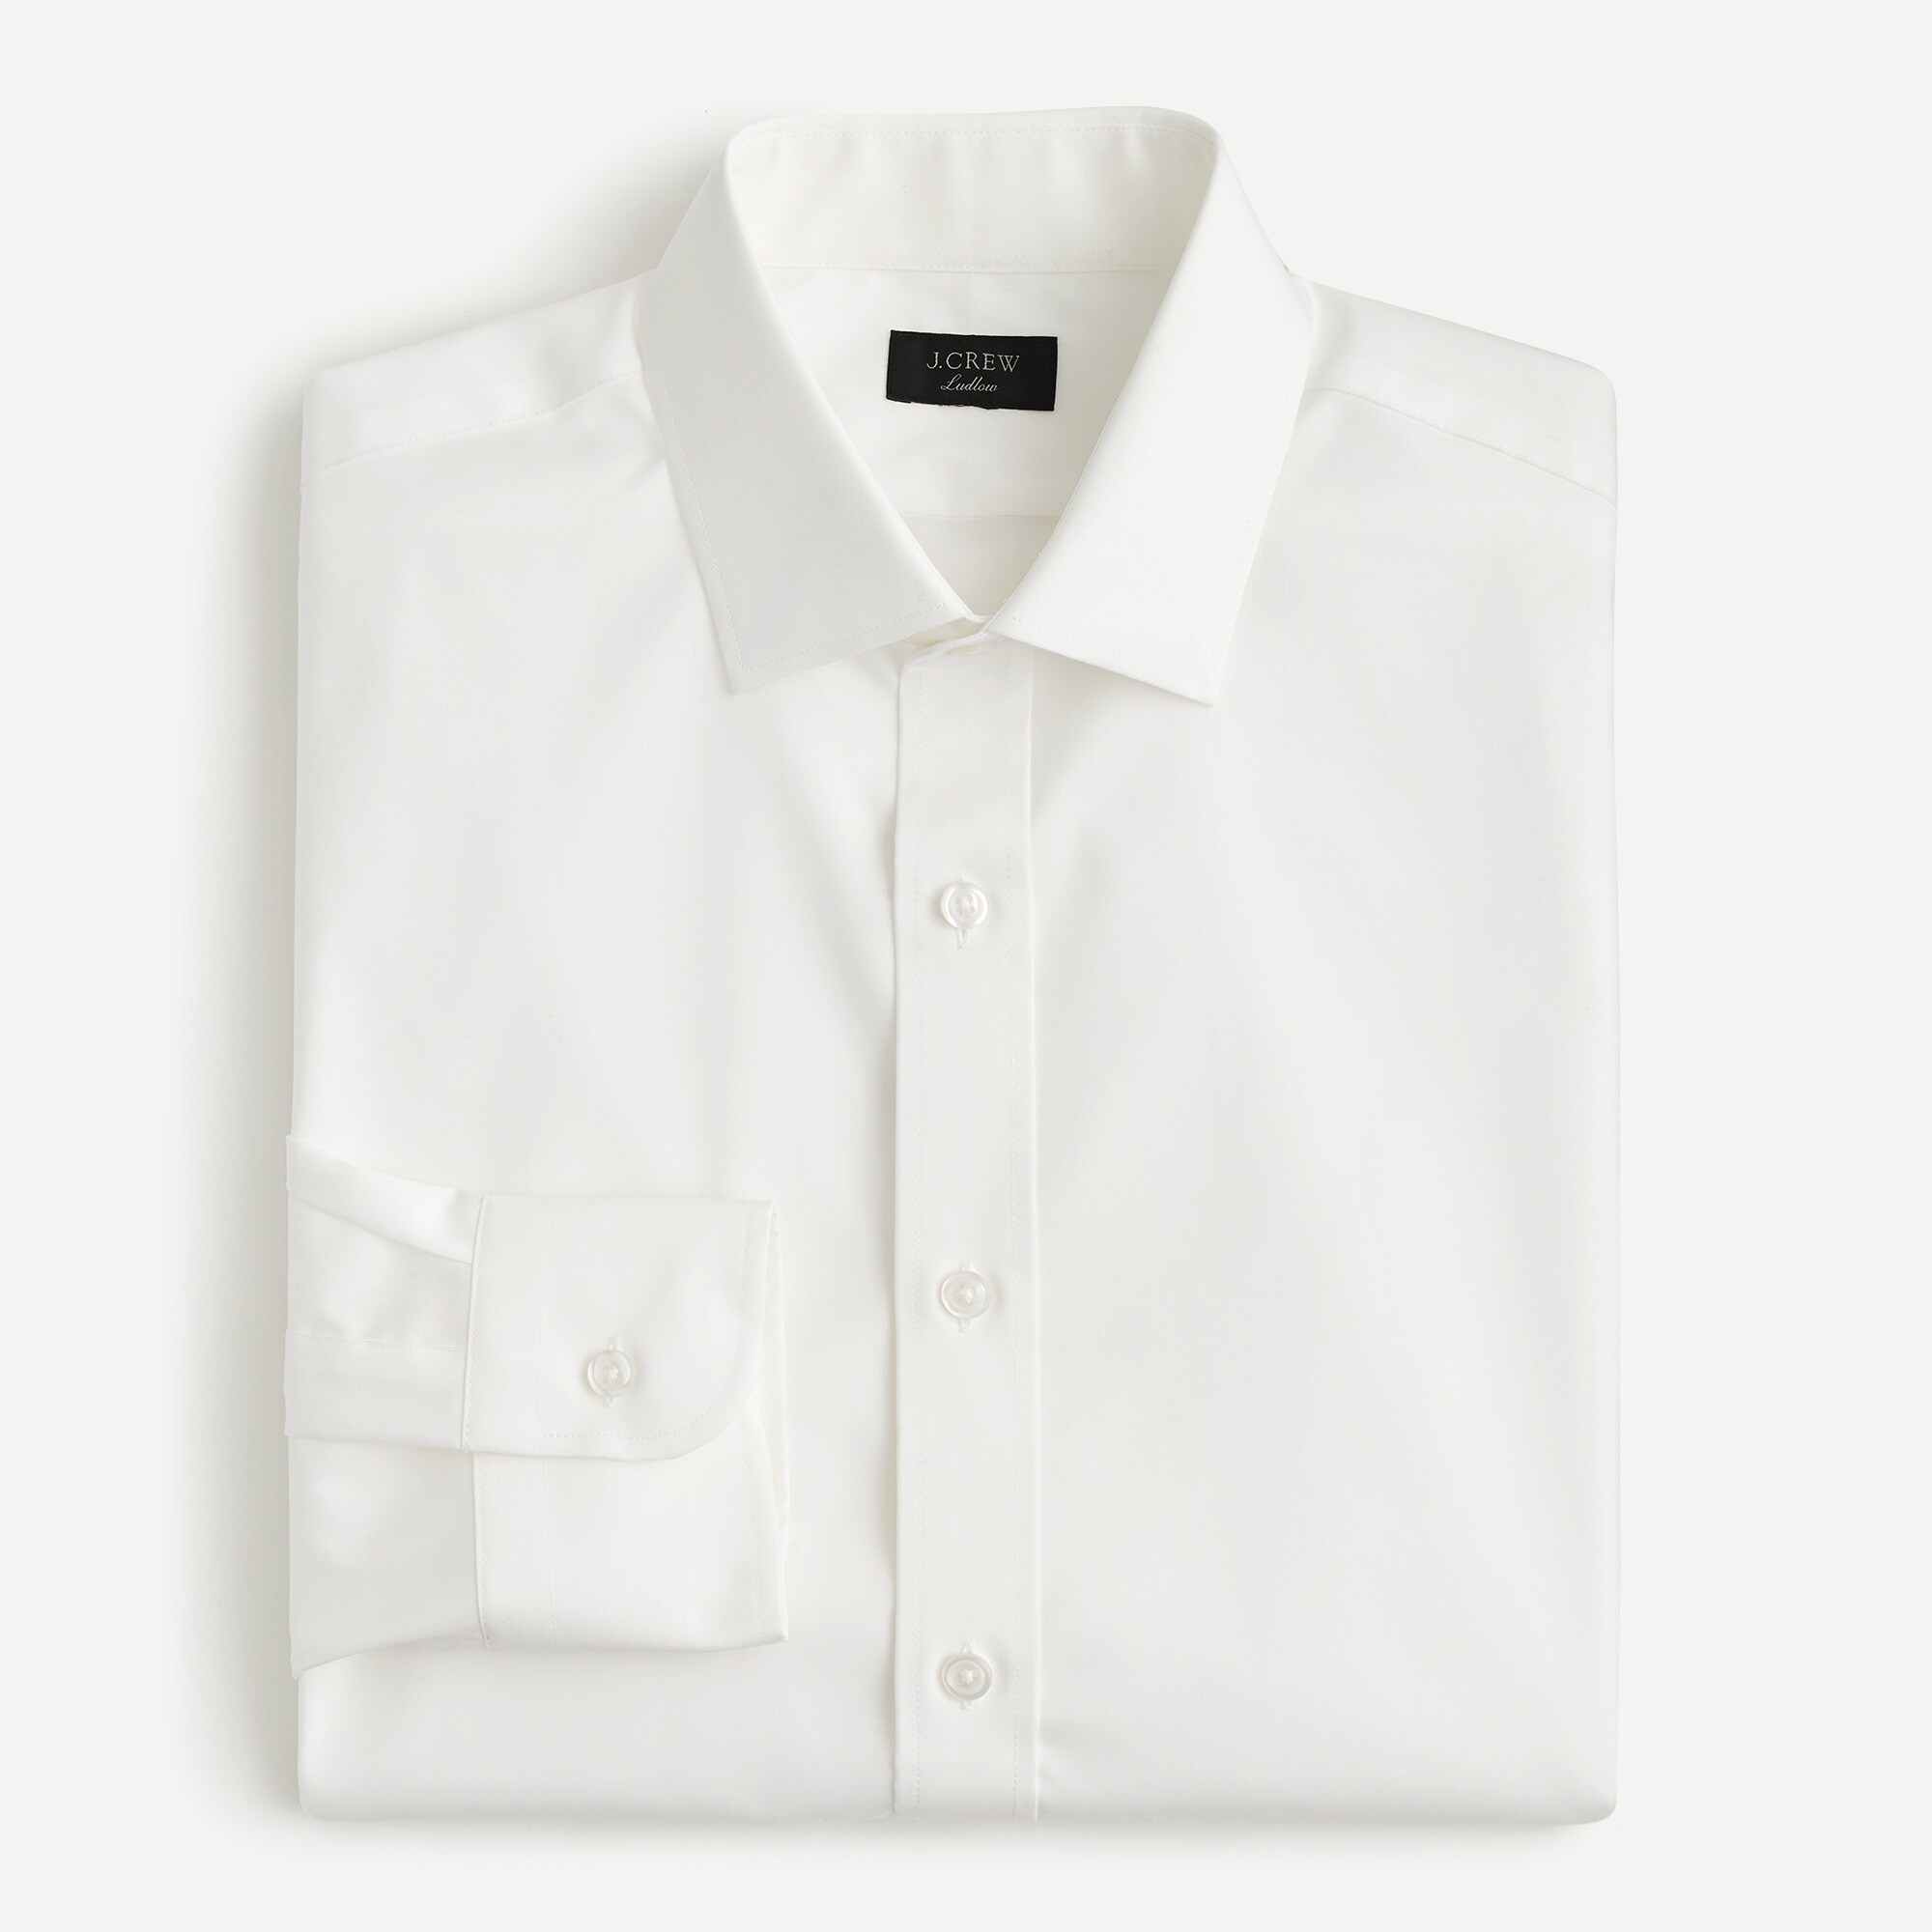 mens Ludlow stretch two-ply easy-care cotton dress shirt in solid